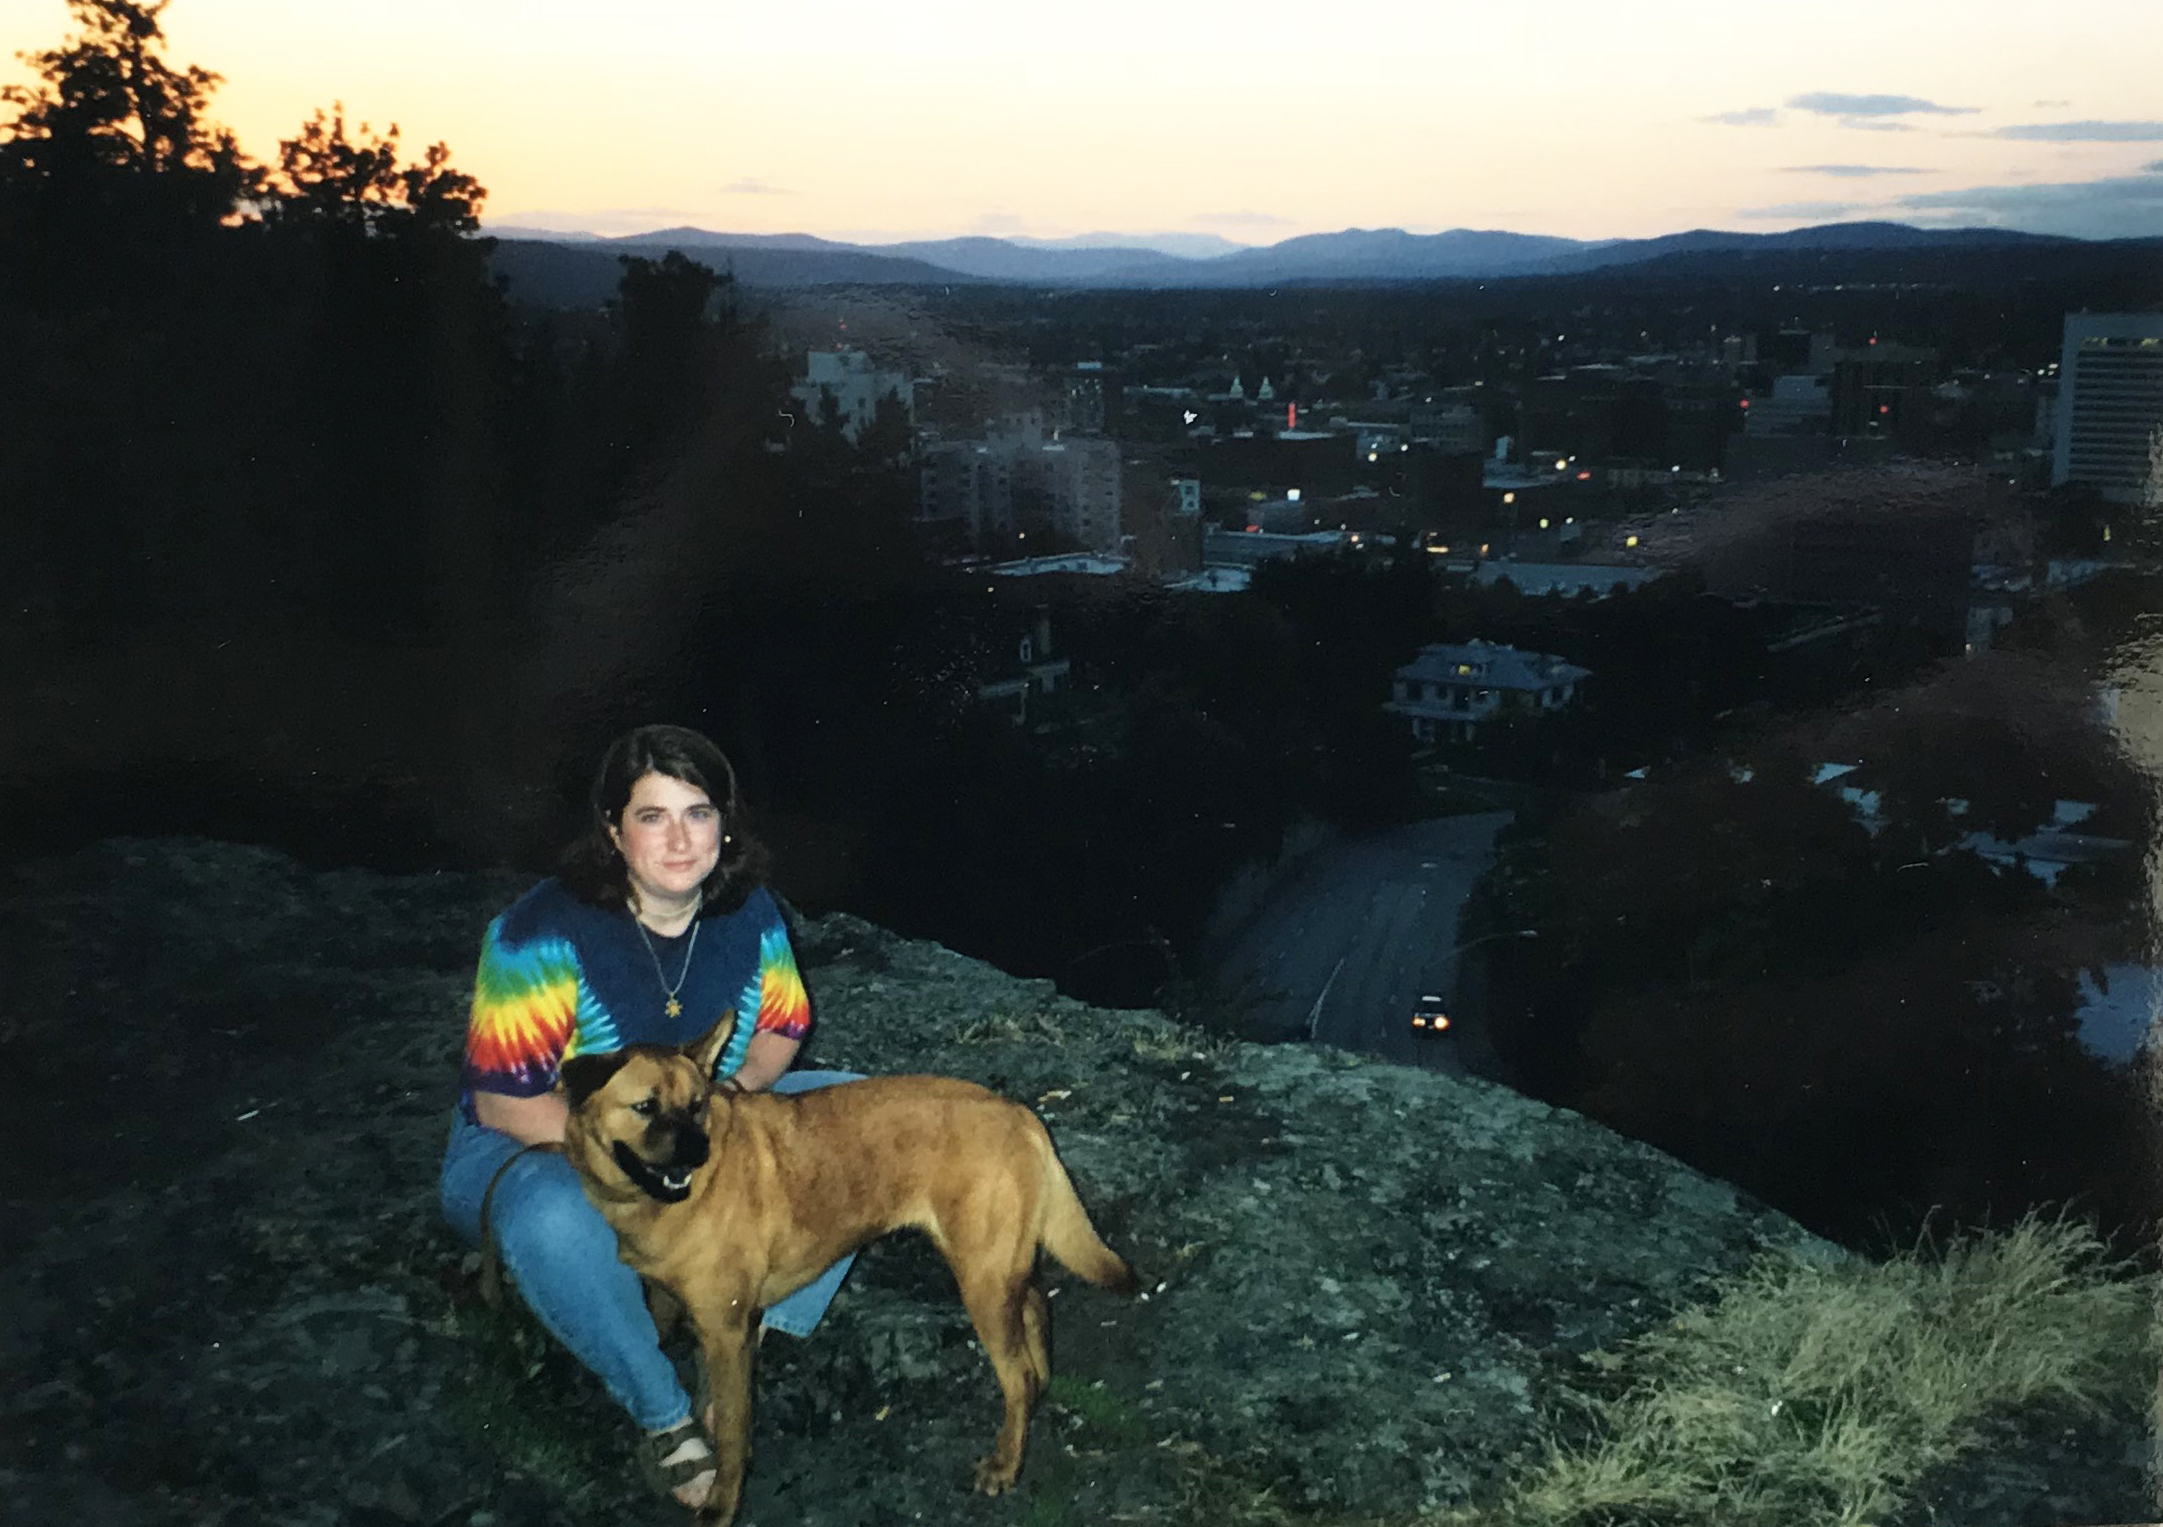 writer Kate Vanskike with her dog on a rock overlooking Spokane Washington